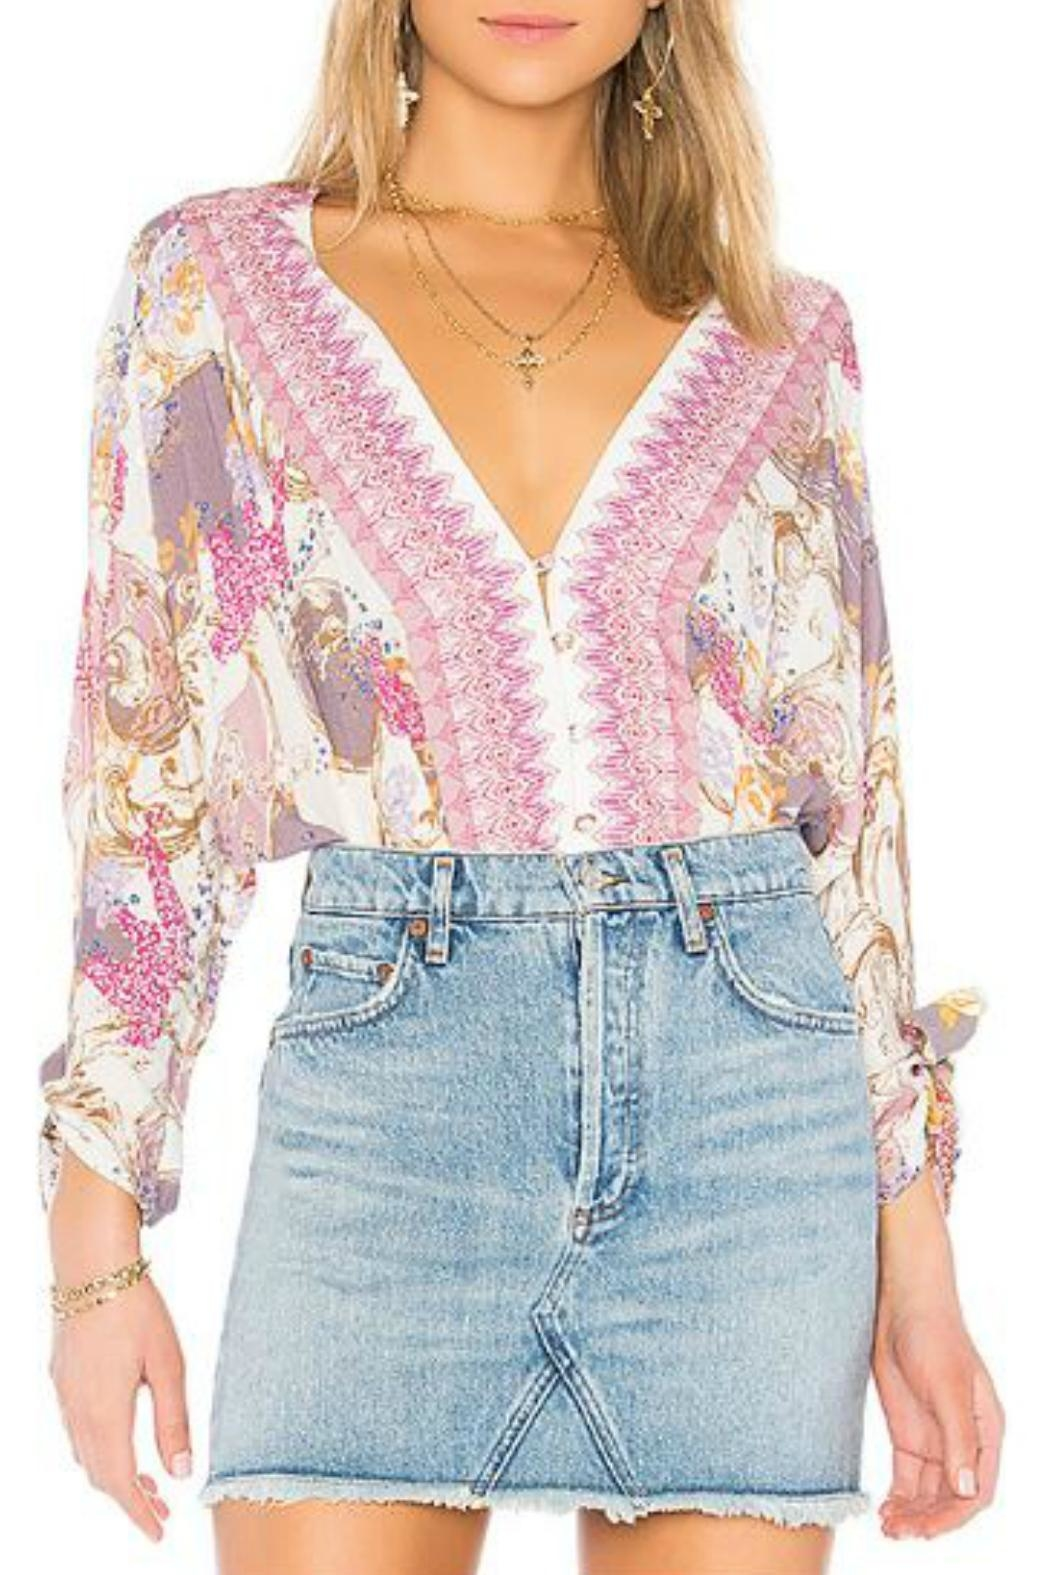 Free People Patterned Button-Front Blouse - Main Image